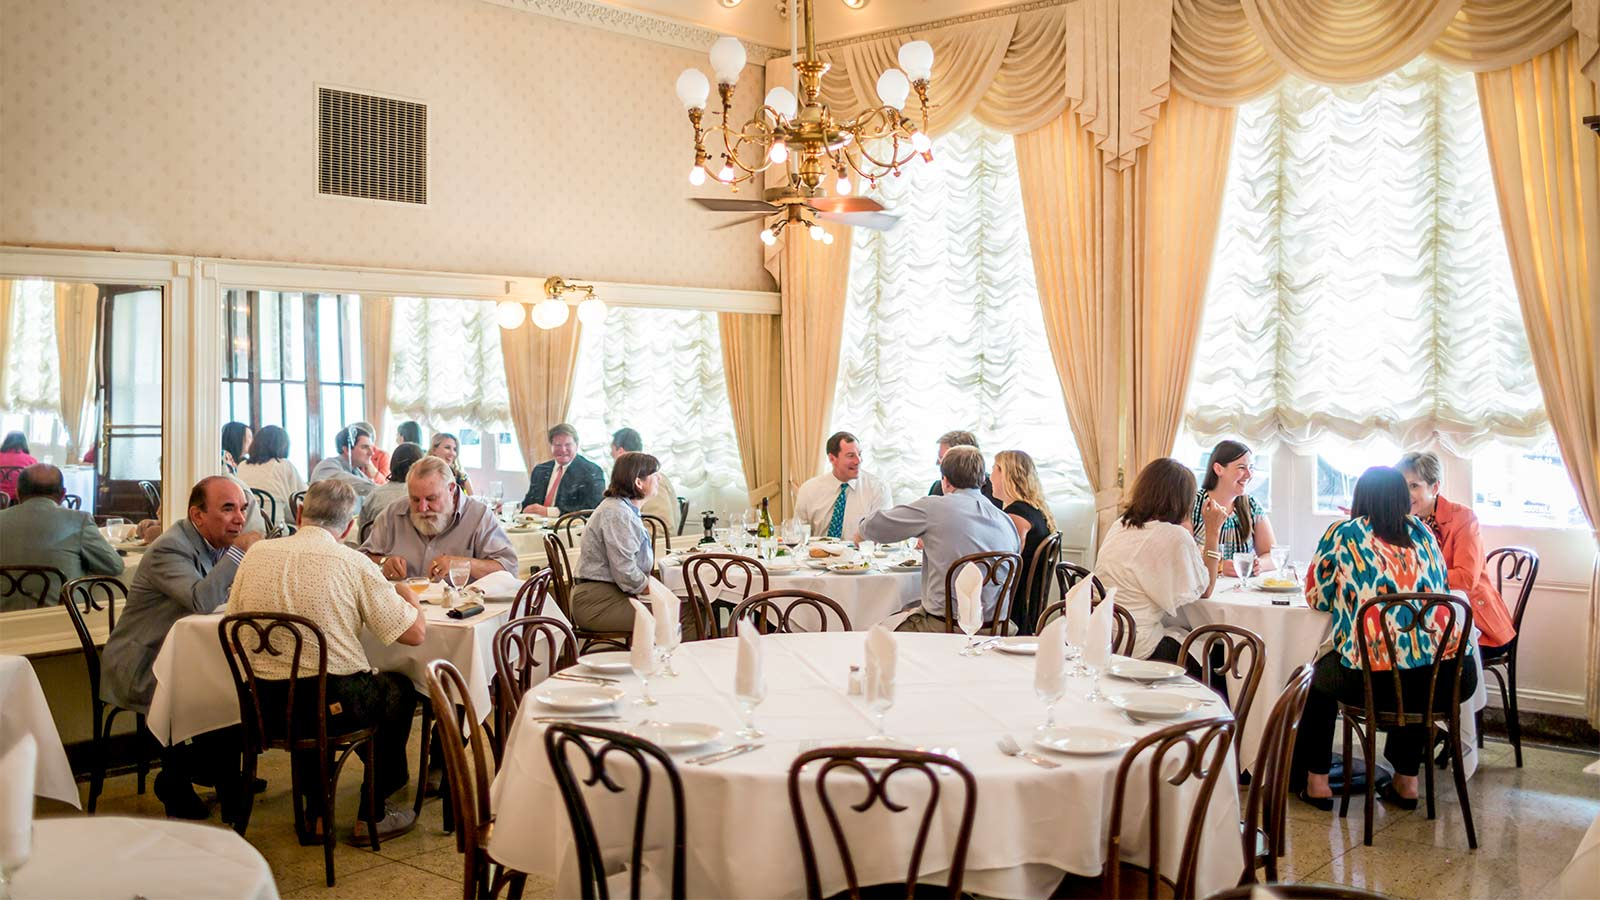 The dining room at Antoine's Restaurant